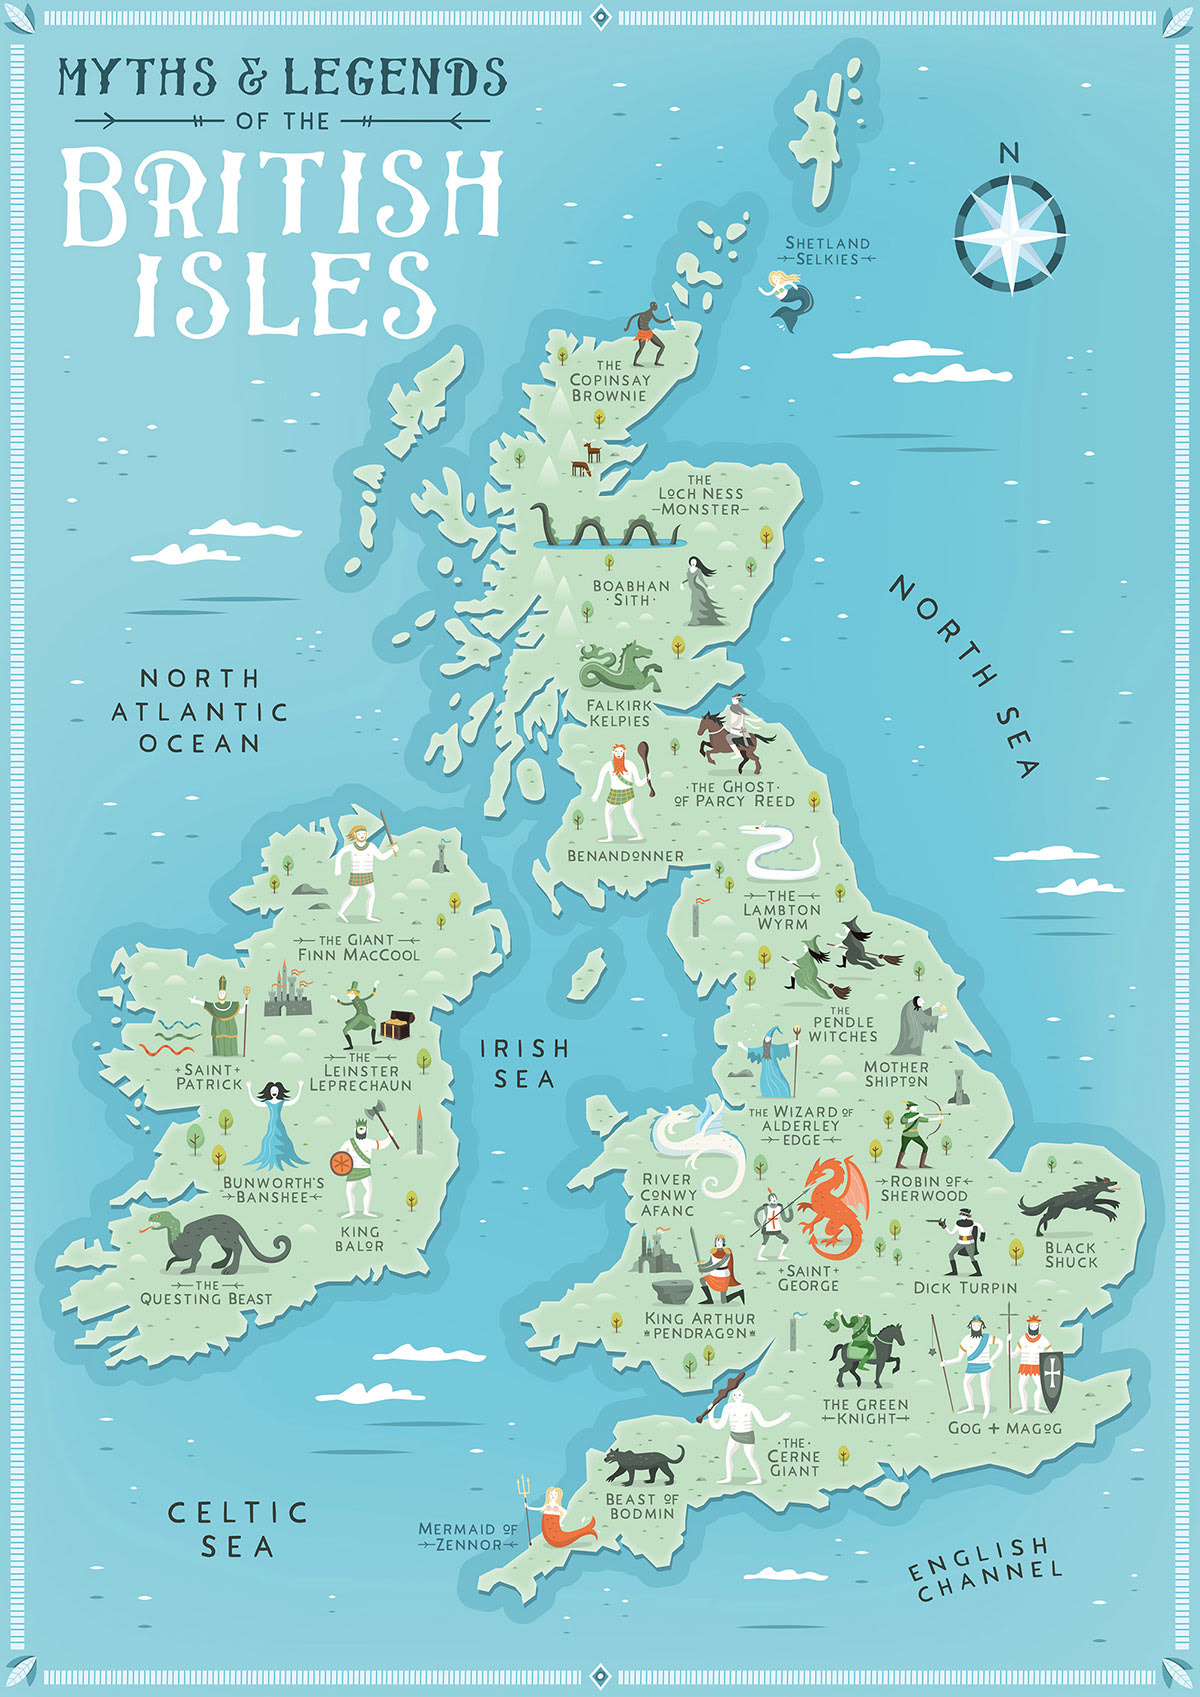 Myths & Legends of the British Isles Map on Behance